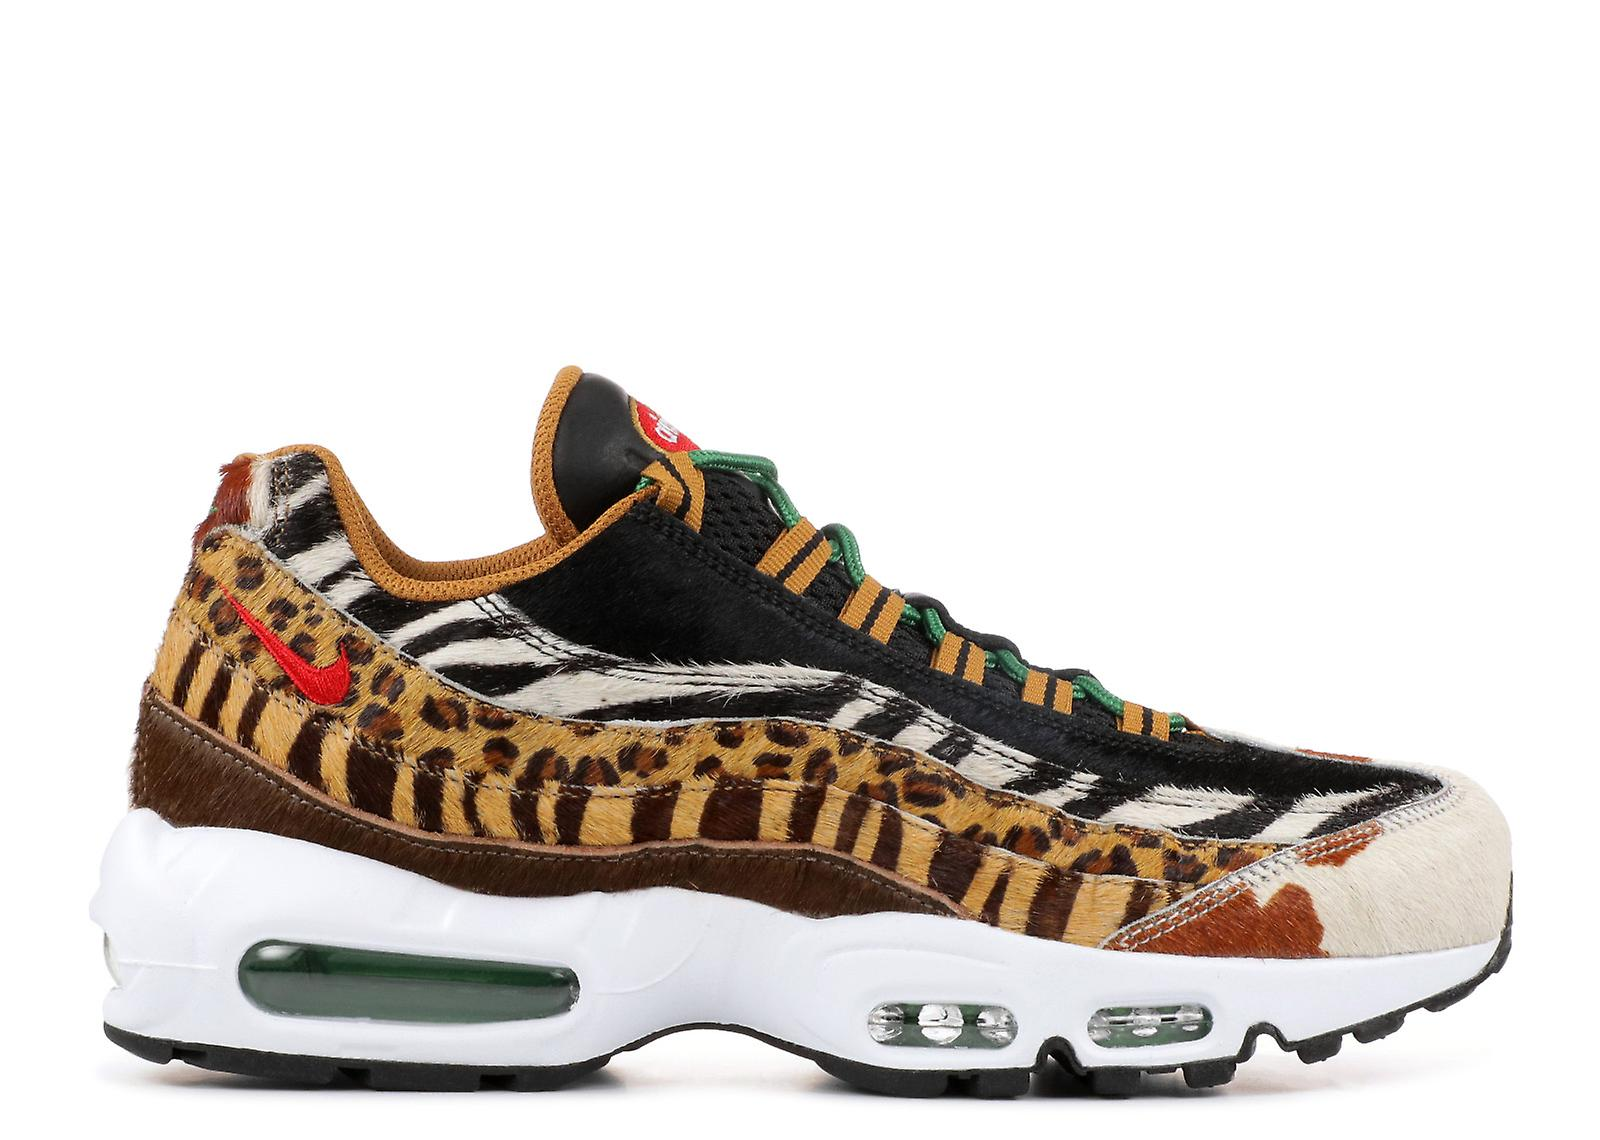 Nike air max 95 atmos animal pack 2.0 dames sneakers bruin/zwart vind je in  Sneakerstad